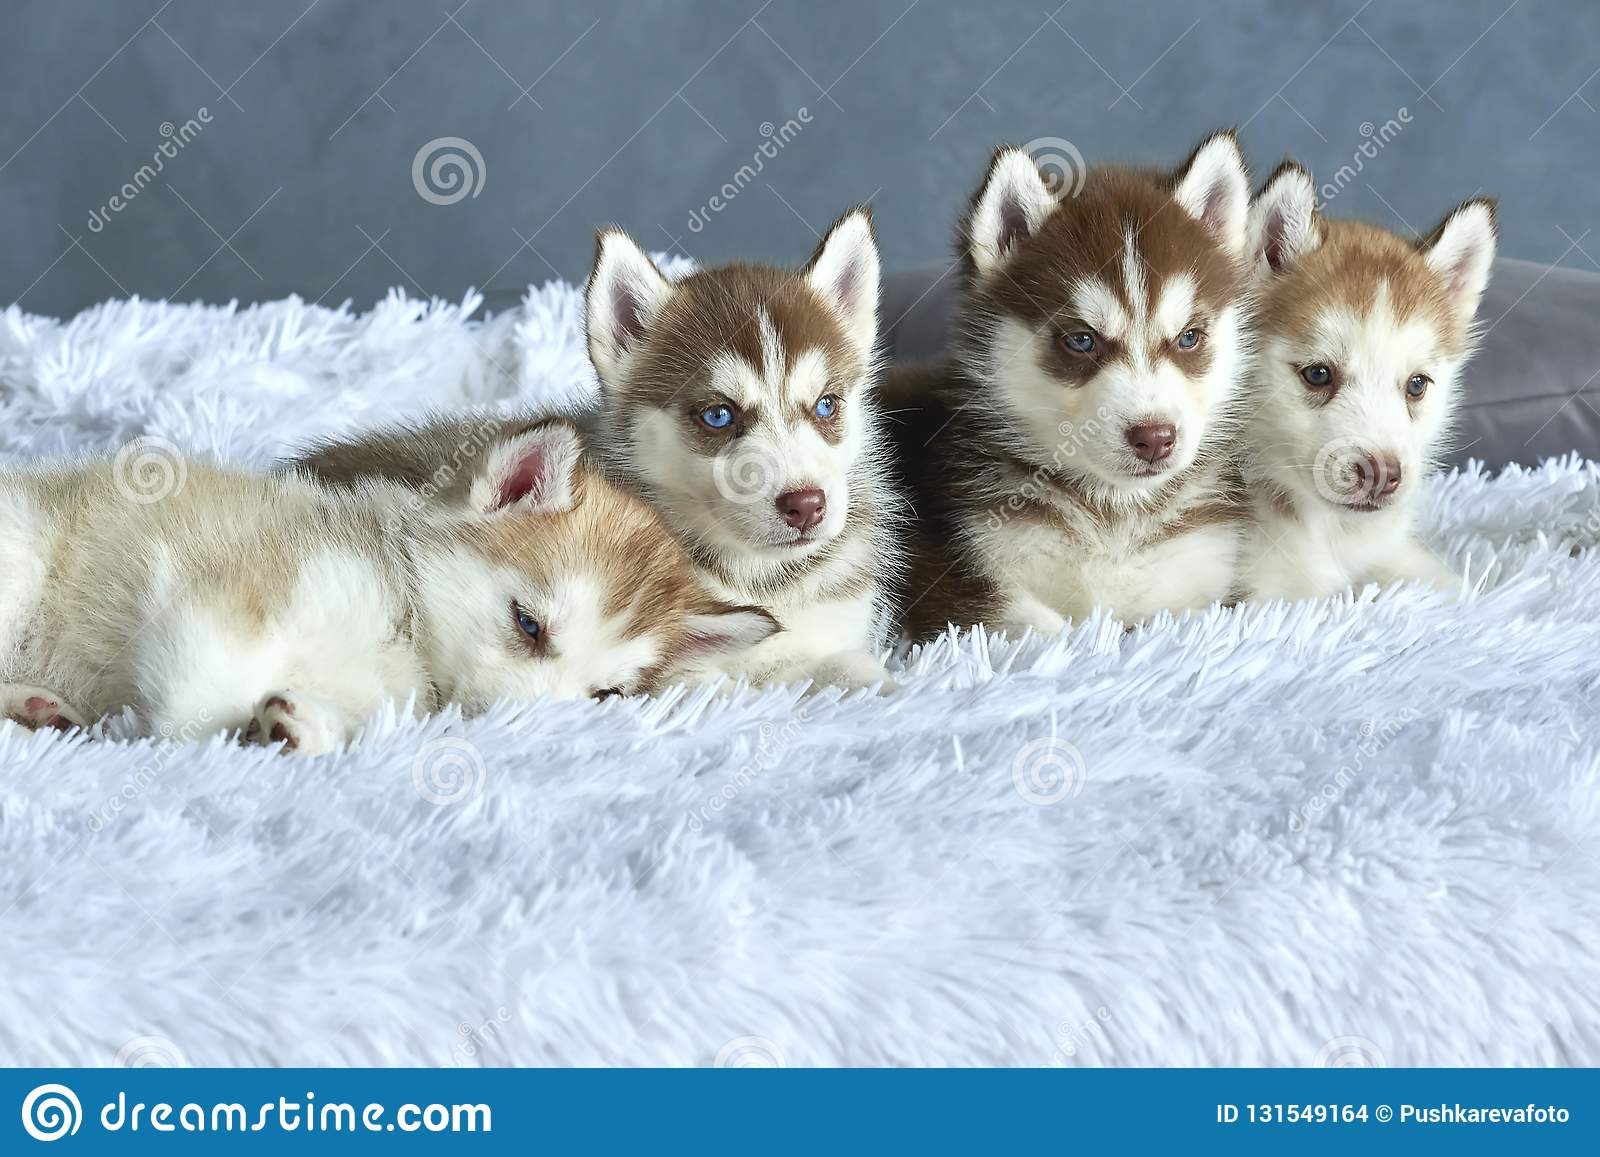 Four Blue Eyed Copper And Light Red Husky Puppies Lying On White Blanket Stock Photo Image Of Blueeyed Copper 131549164